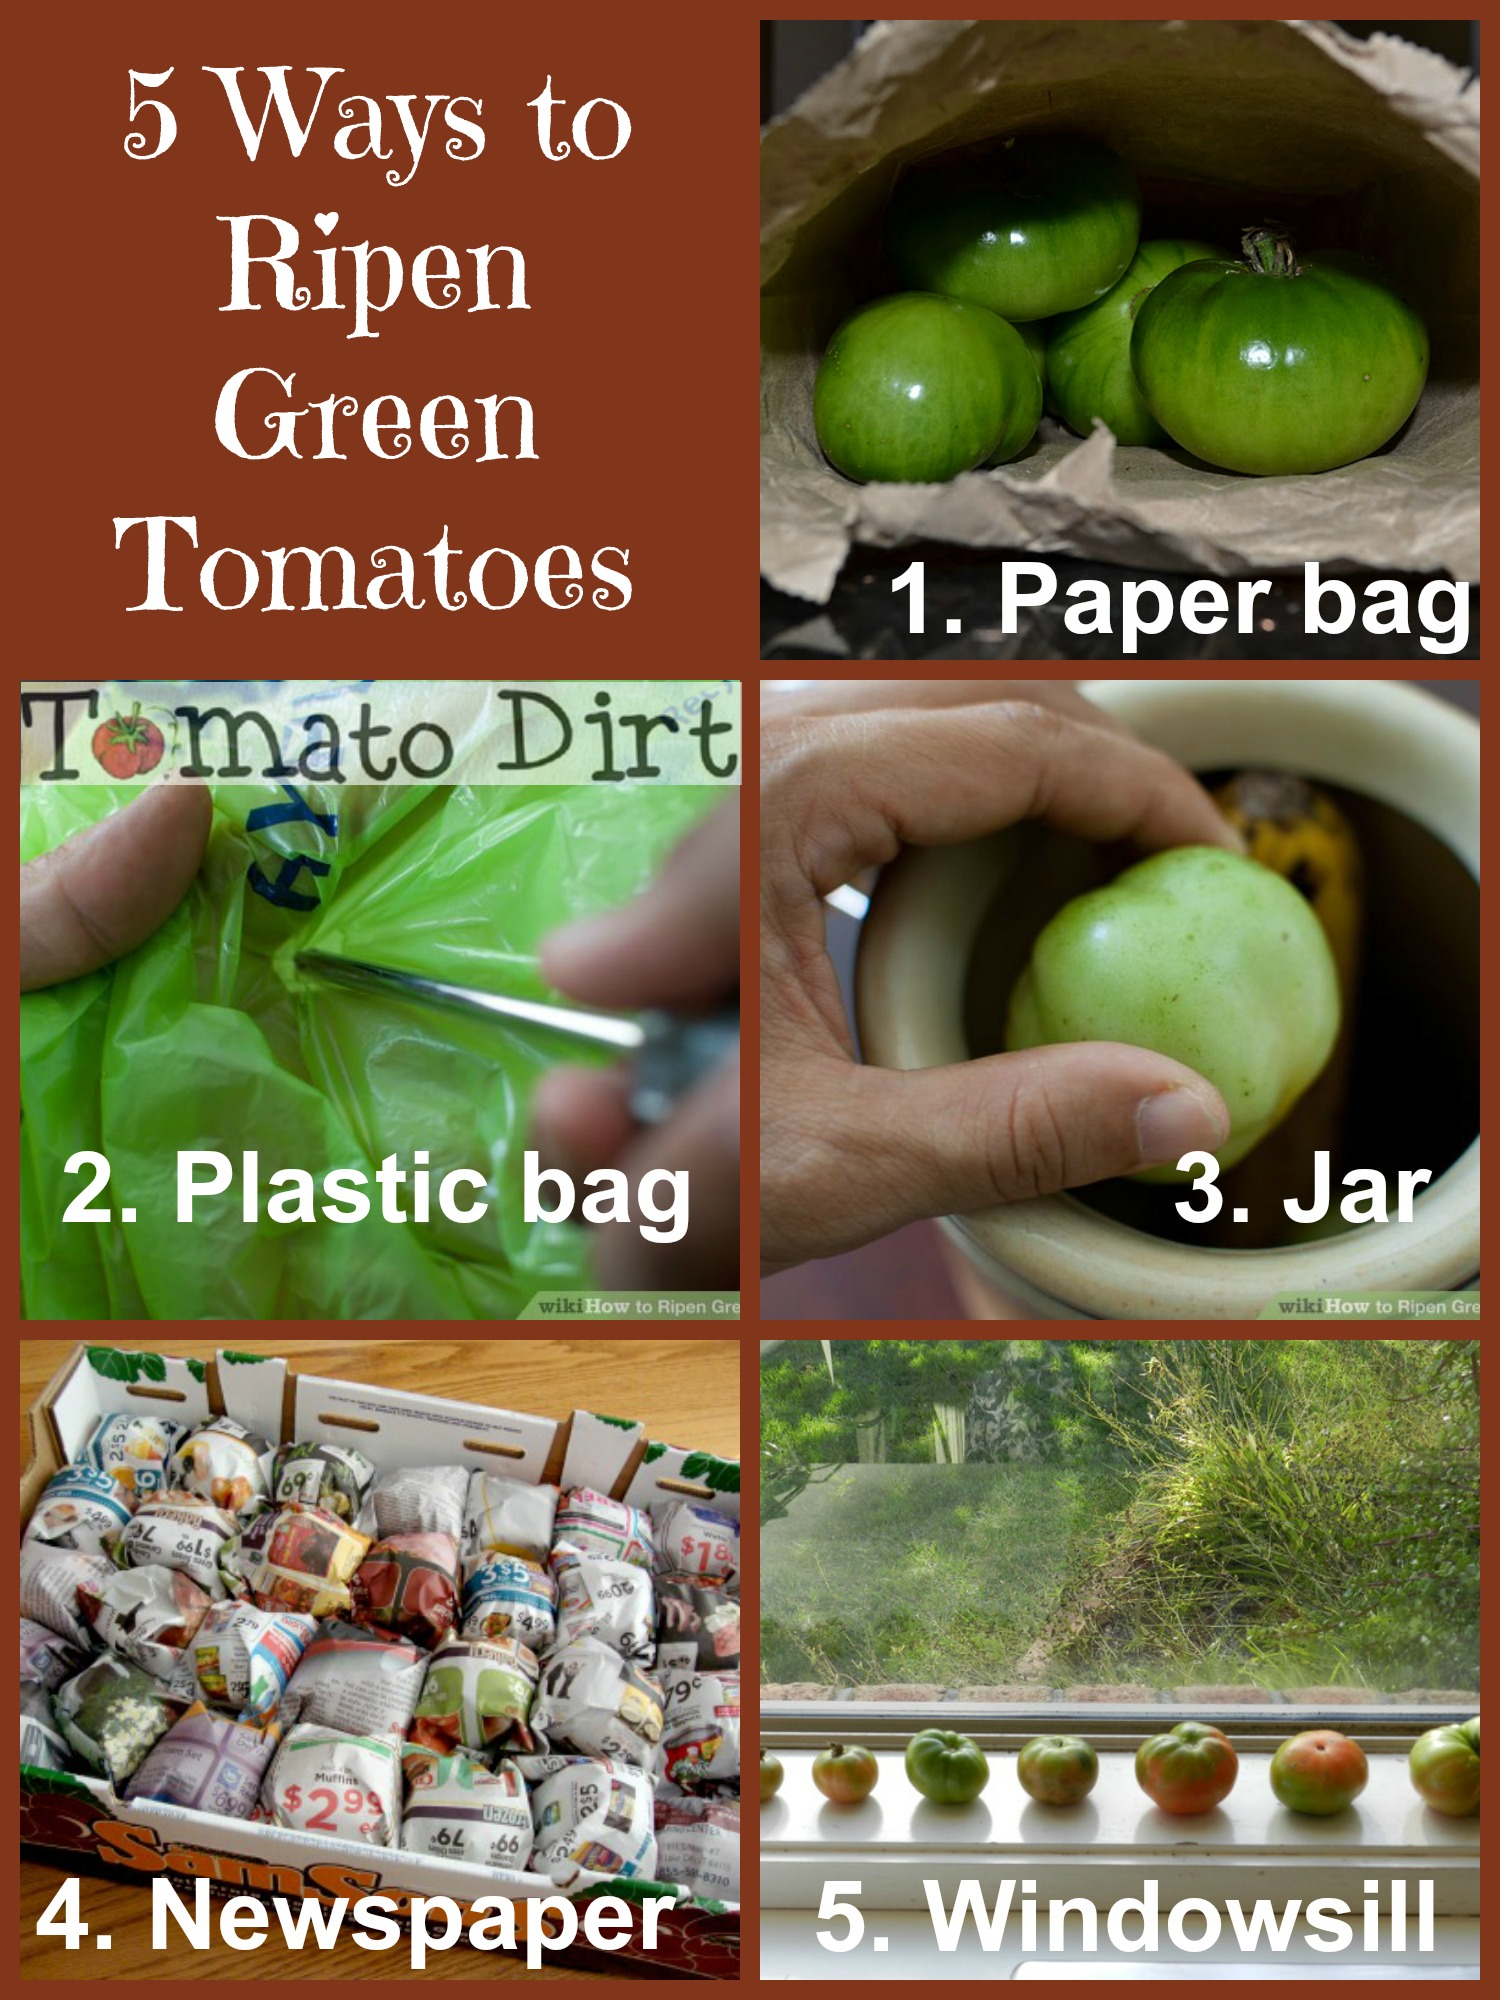 5 ways to ripen green tomatoes with Tomato Dirt